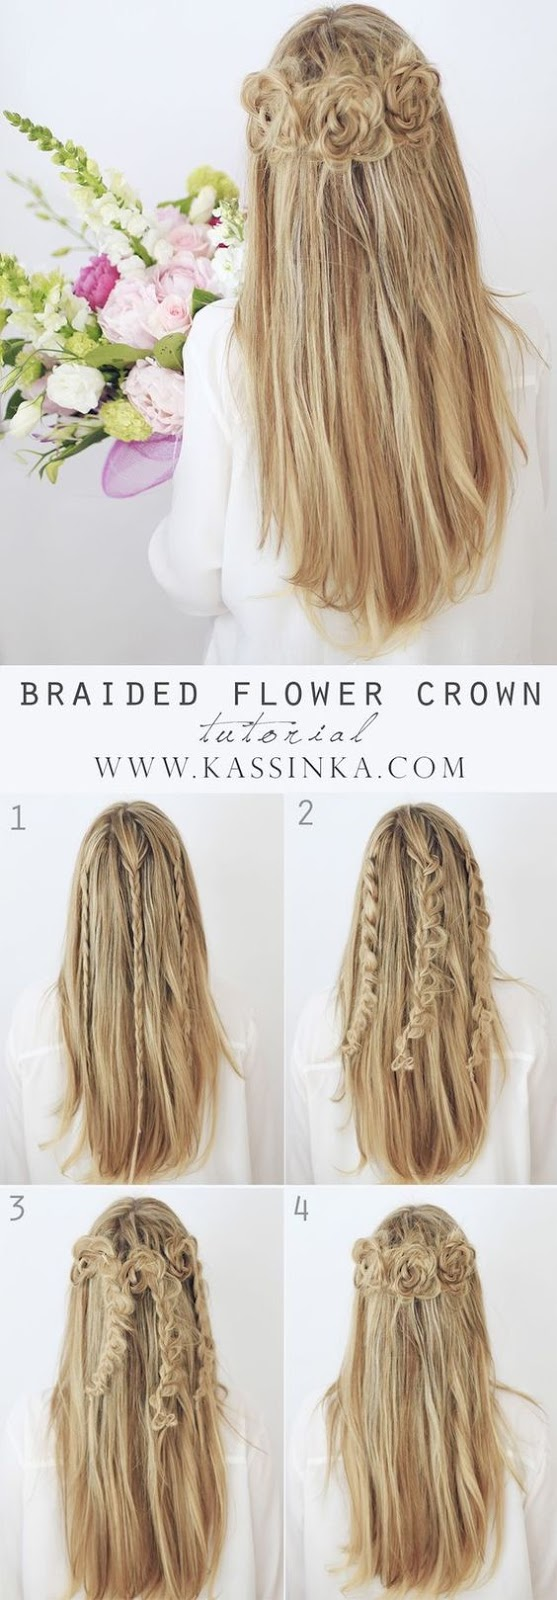 Braided Flower Crown Easy Women's Hairstyles